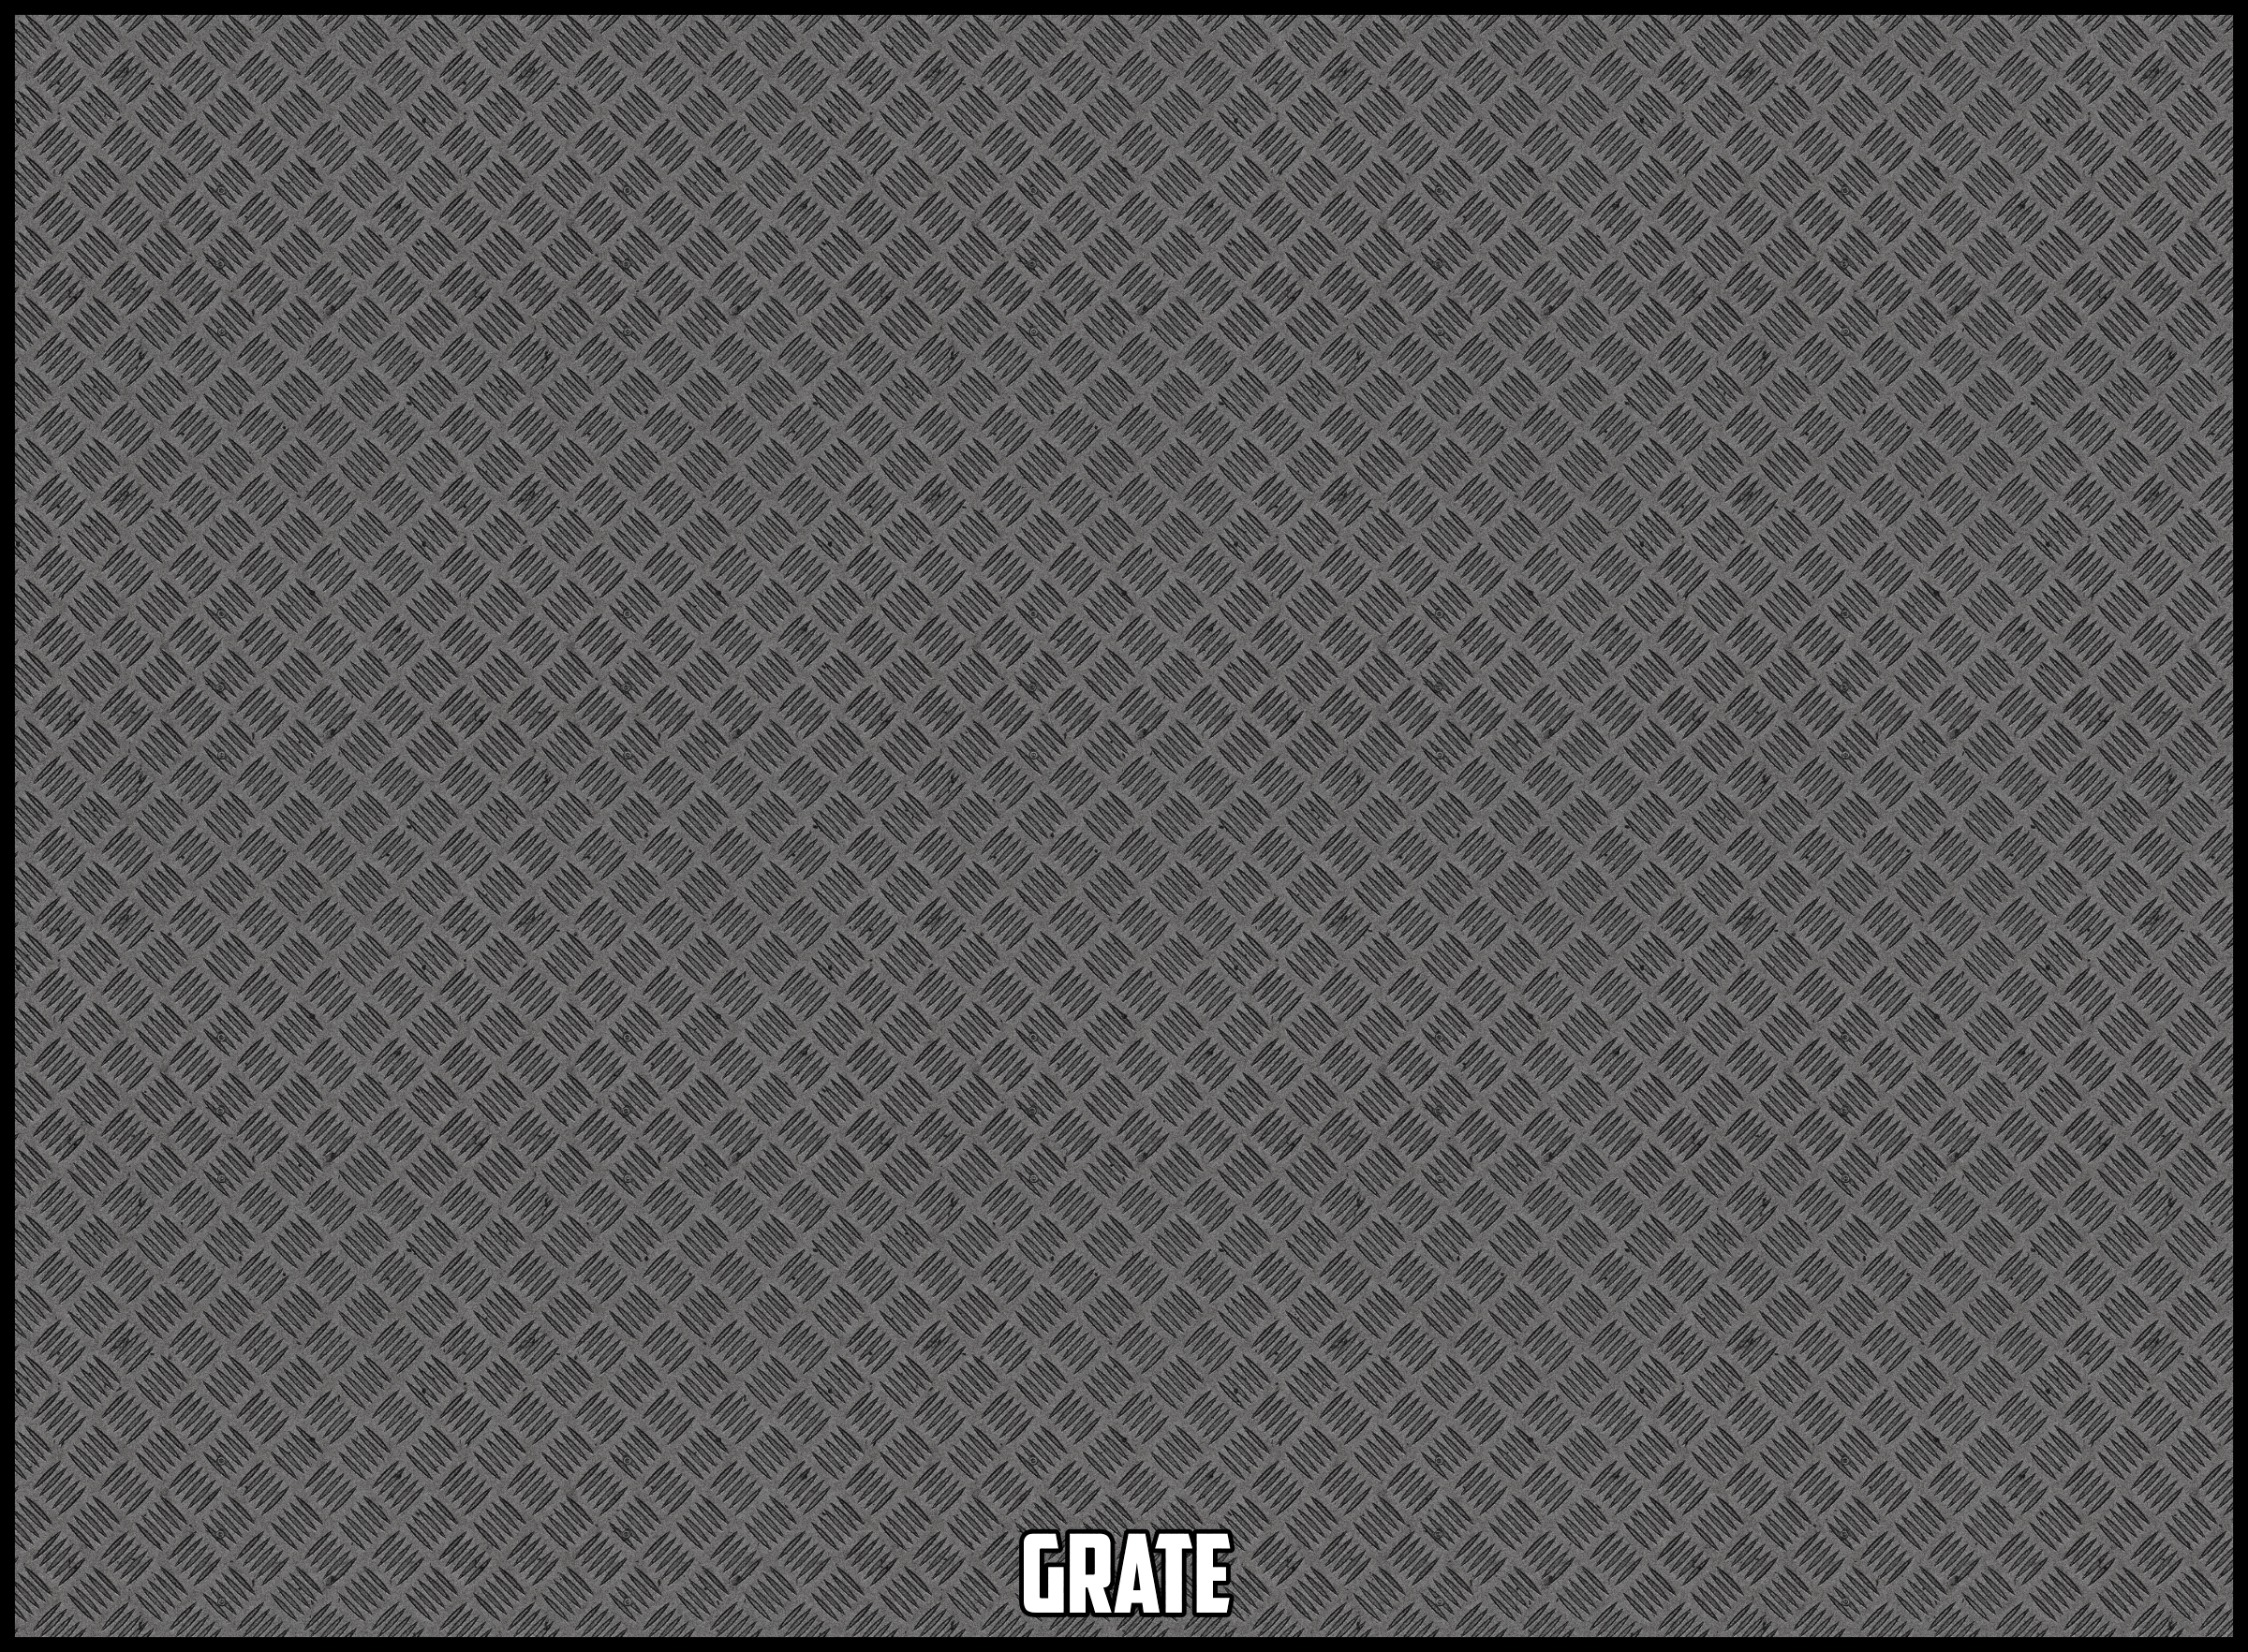 texture-grate-example.png